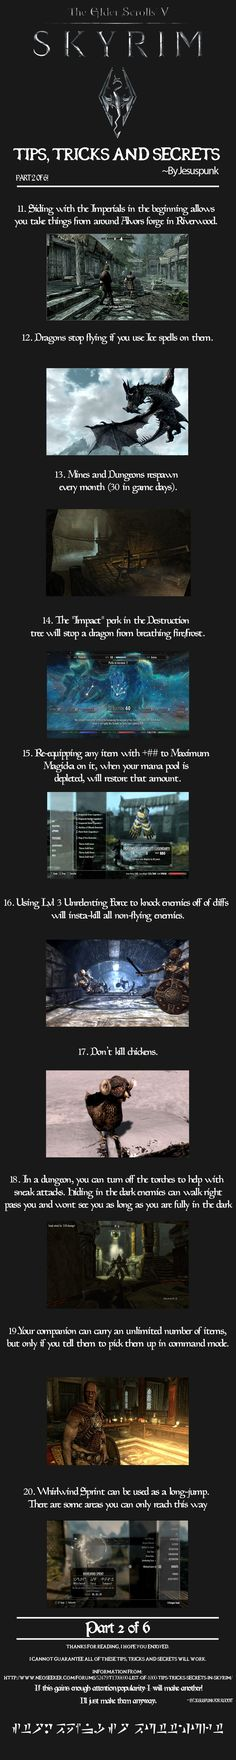 #Skyrim - Tips, Tricks and Secrets! {Part 2}